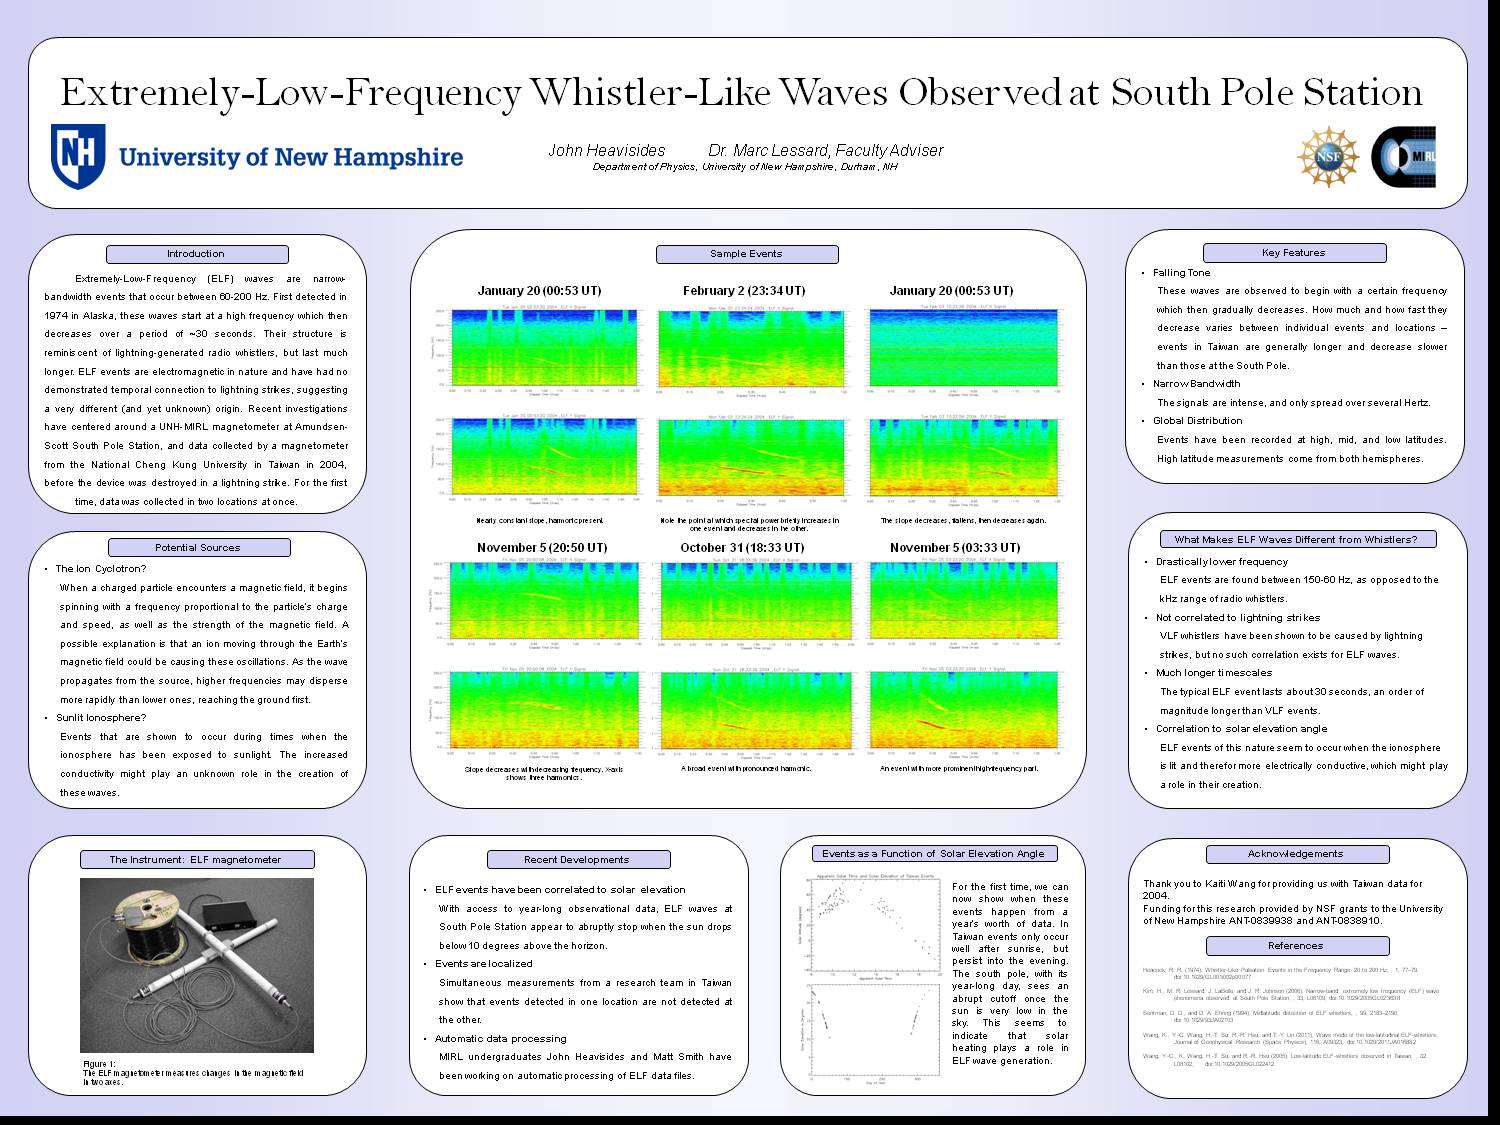 Our Singing Ionosphere:  Extremely-Low-Frequency Whistlers Observed At South Pole Station by jheavisides